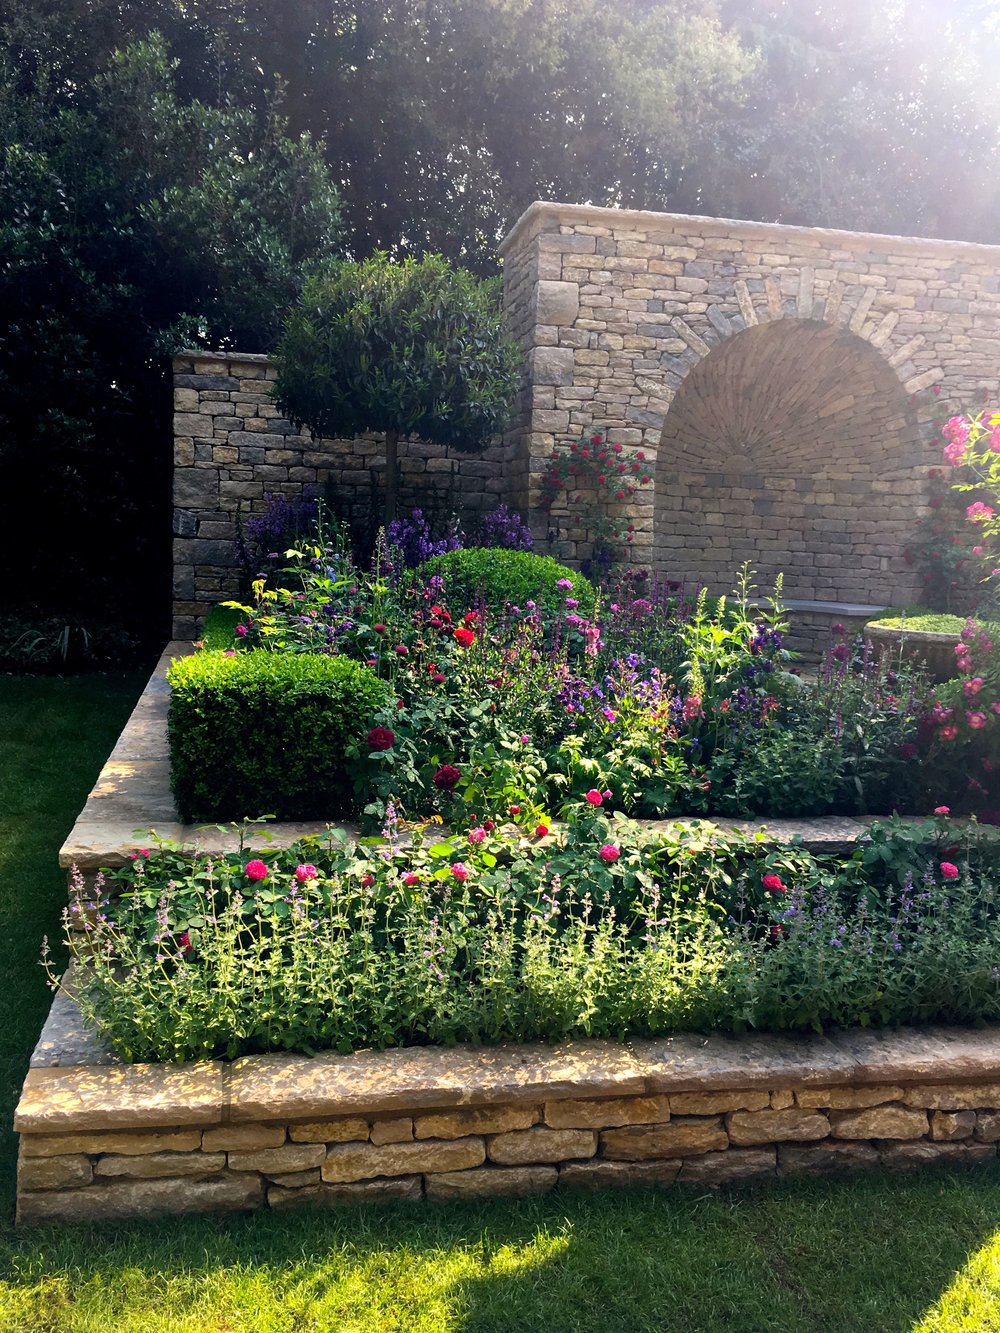 An artisan garden at Chelsea reminiscent of the arts and crafts movement